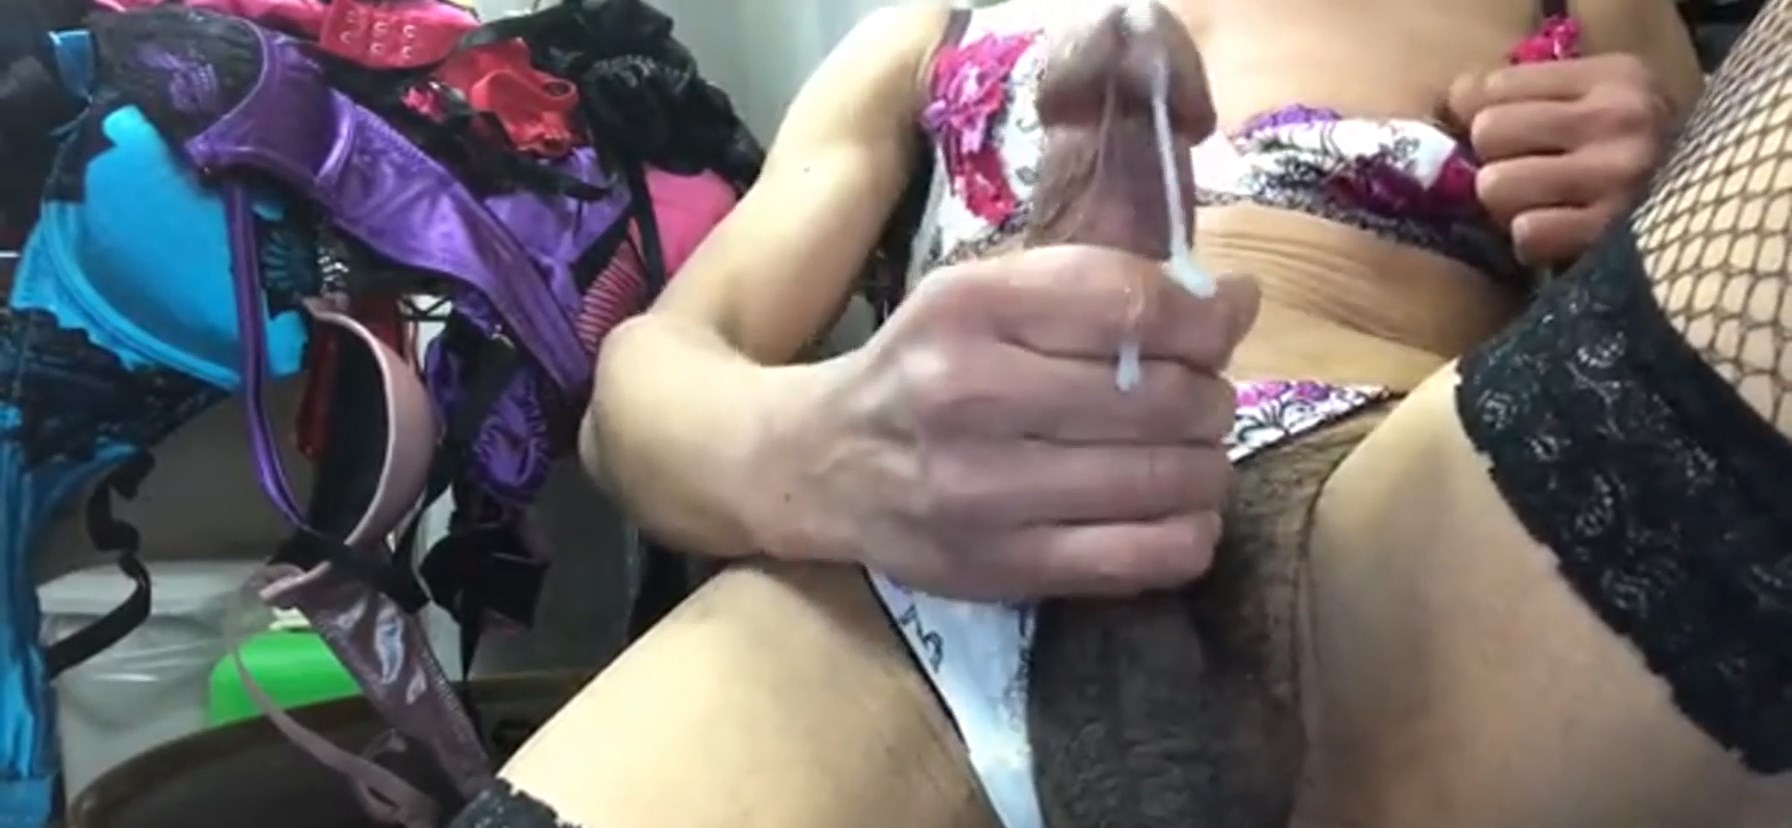 School Girl Dressing up and Cumming on Cam!